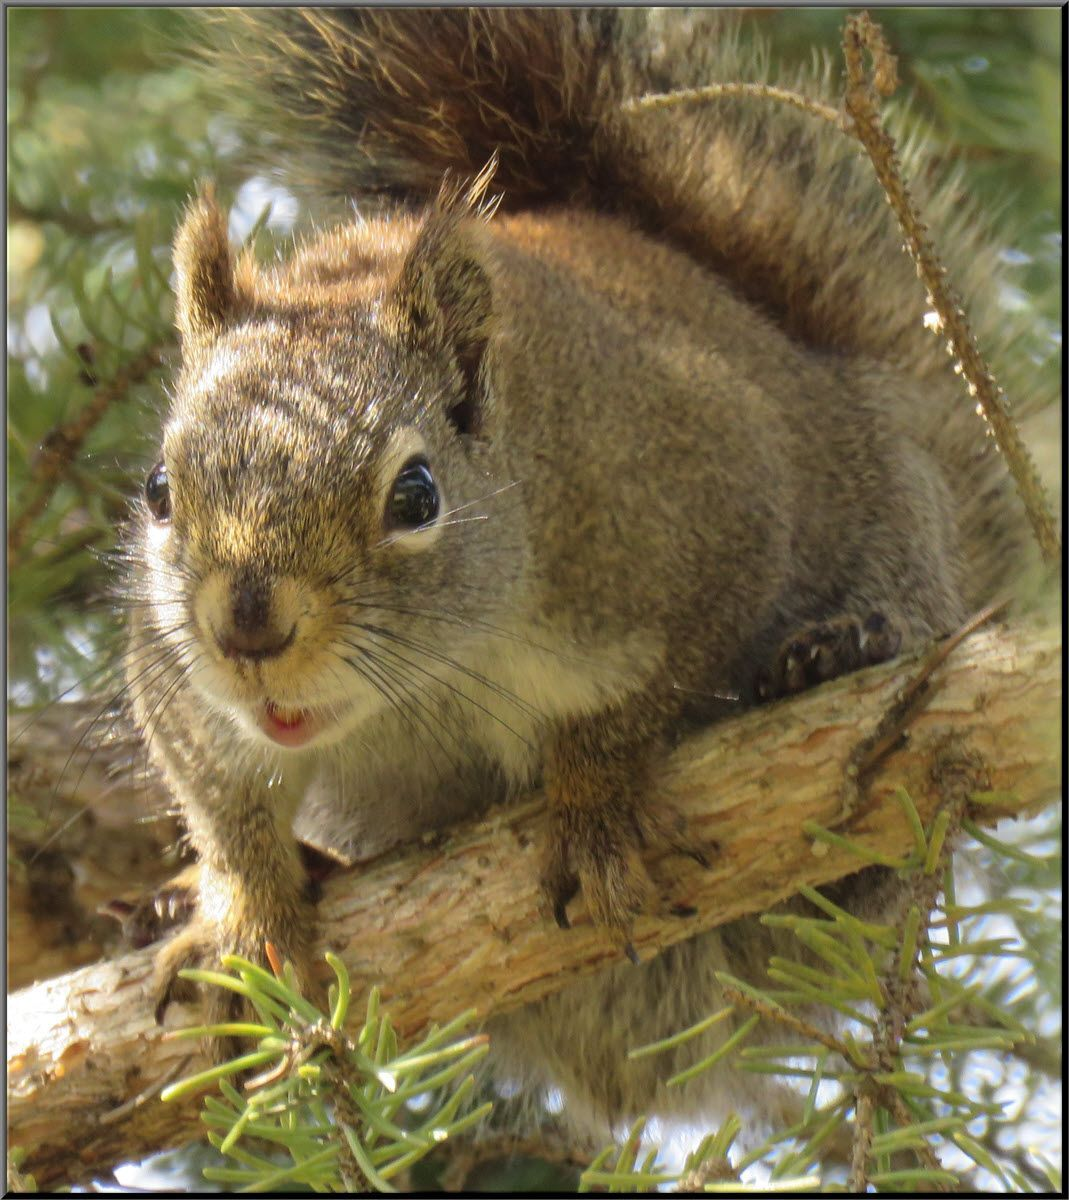 close up squirrel in spruce tree mouth open.JPG